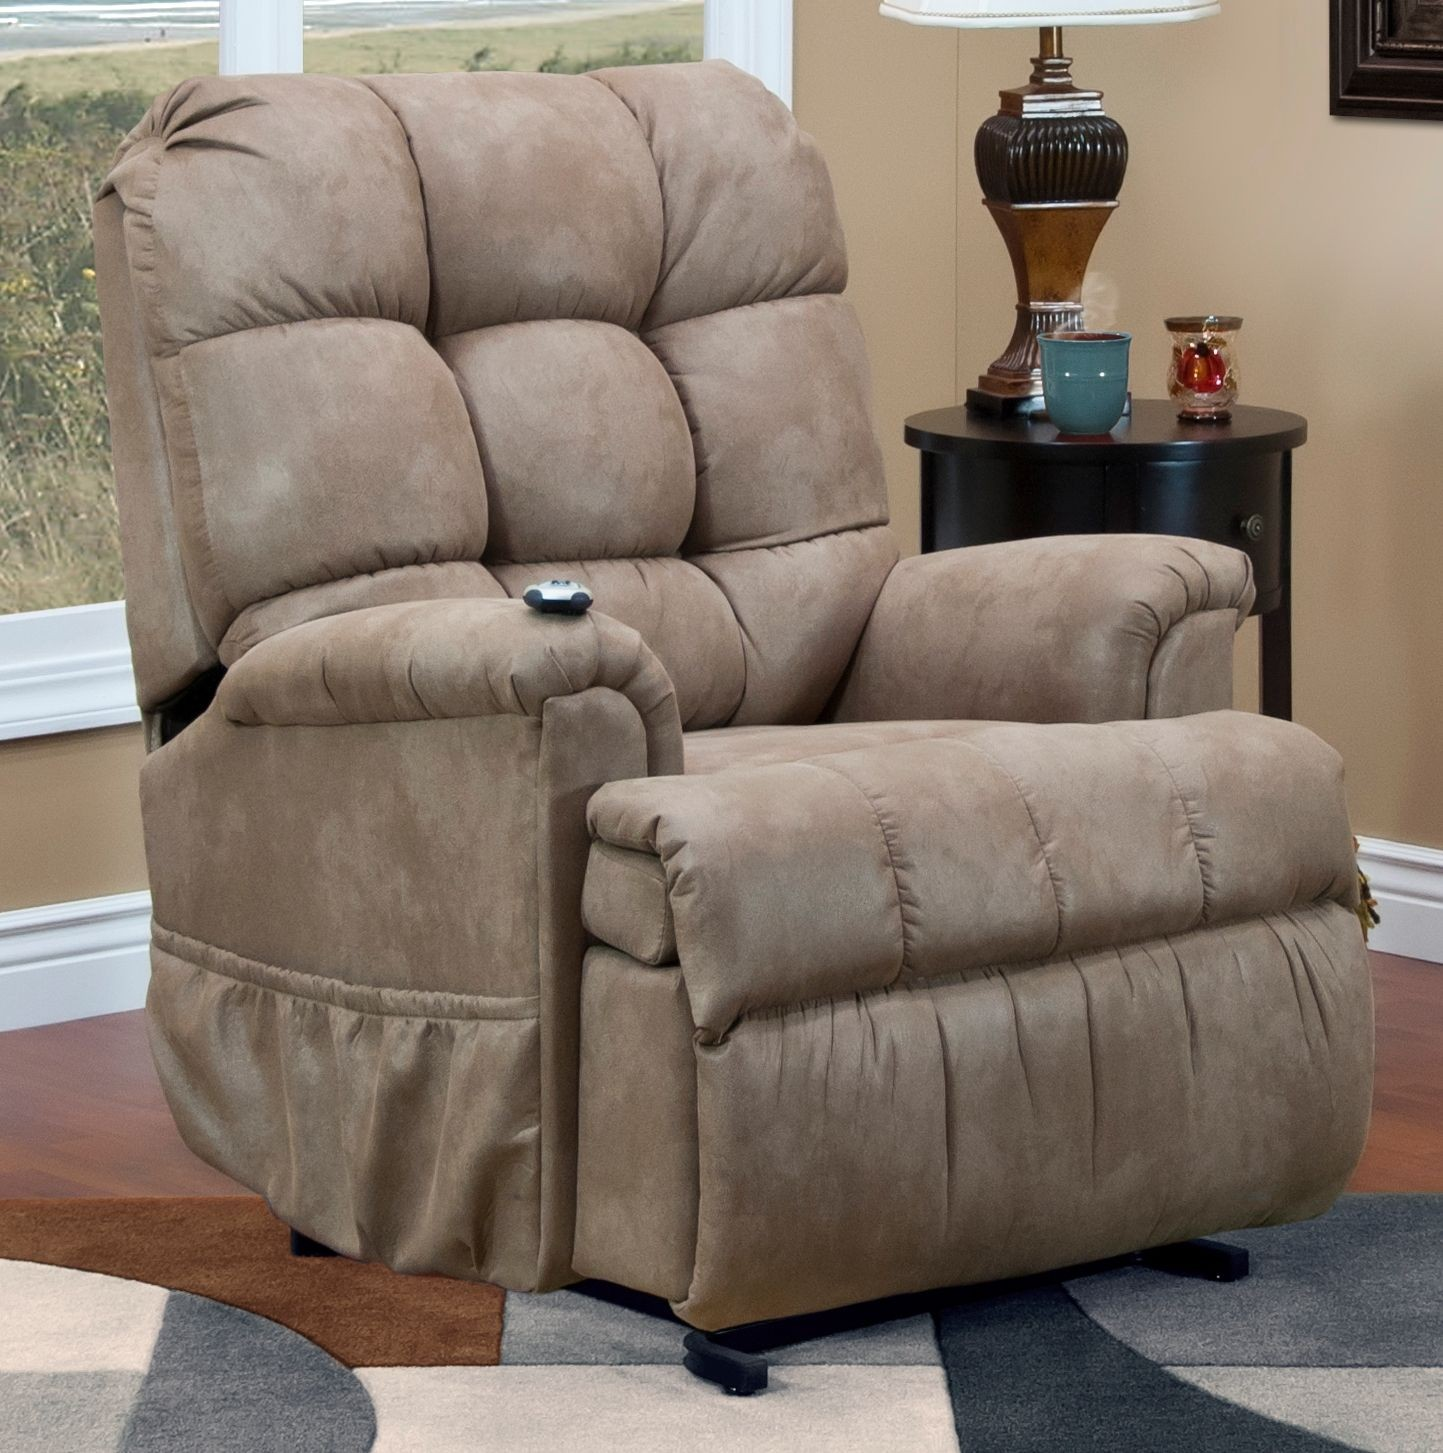 Stampede Mocha Sleeper Reclining Lift Chair From Med Lift